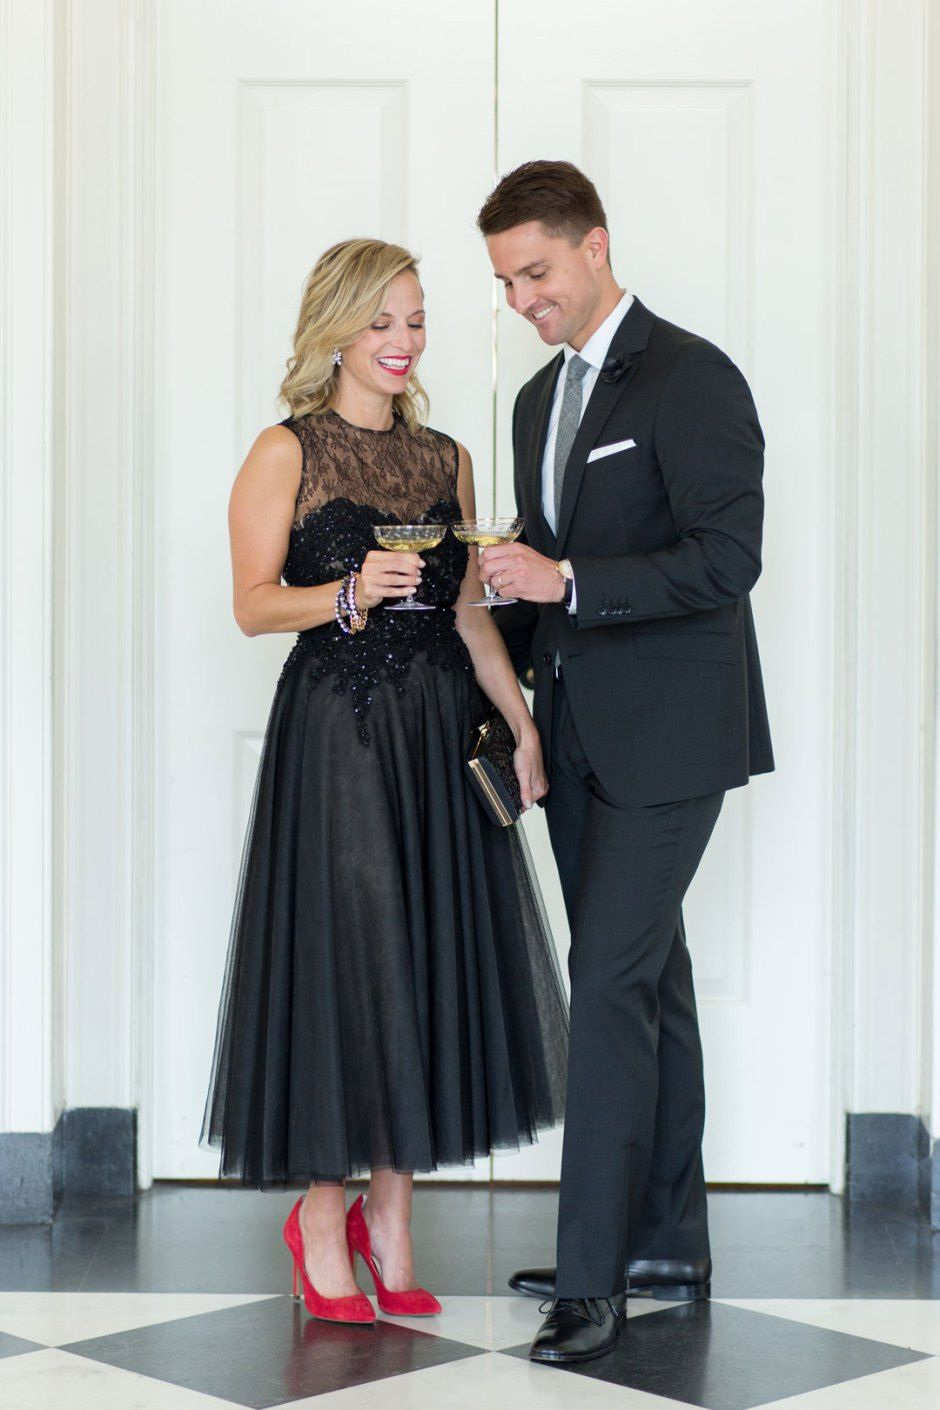 The Runway Dress For A Black Tie Optional Wedding Men S Suit Photo By Jennifer Kathryn Photography